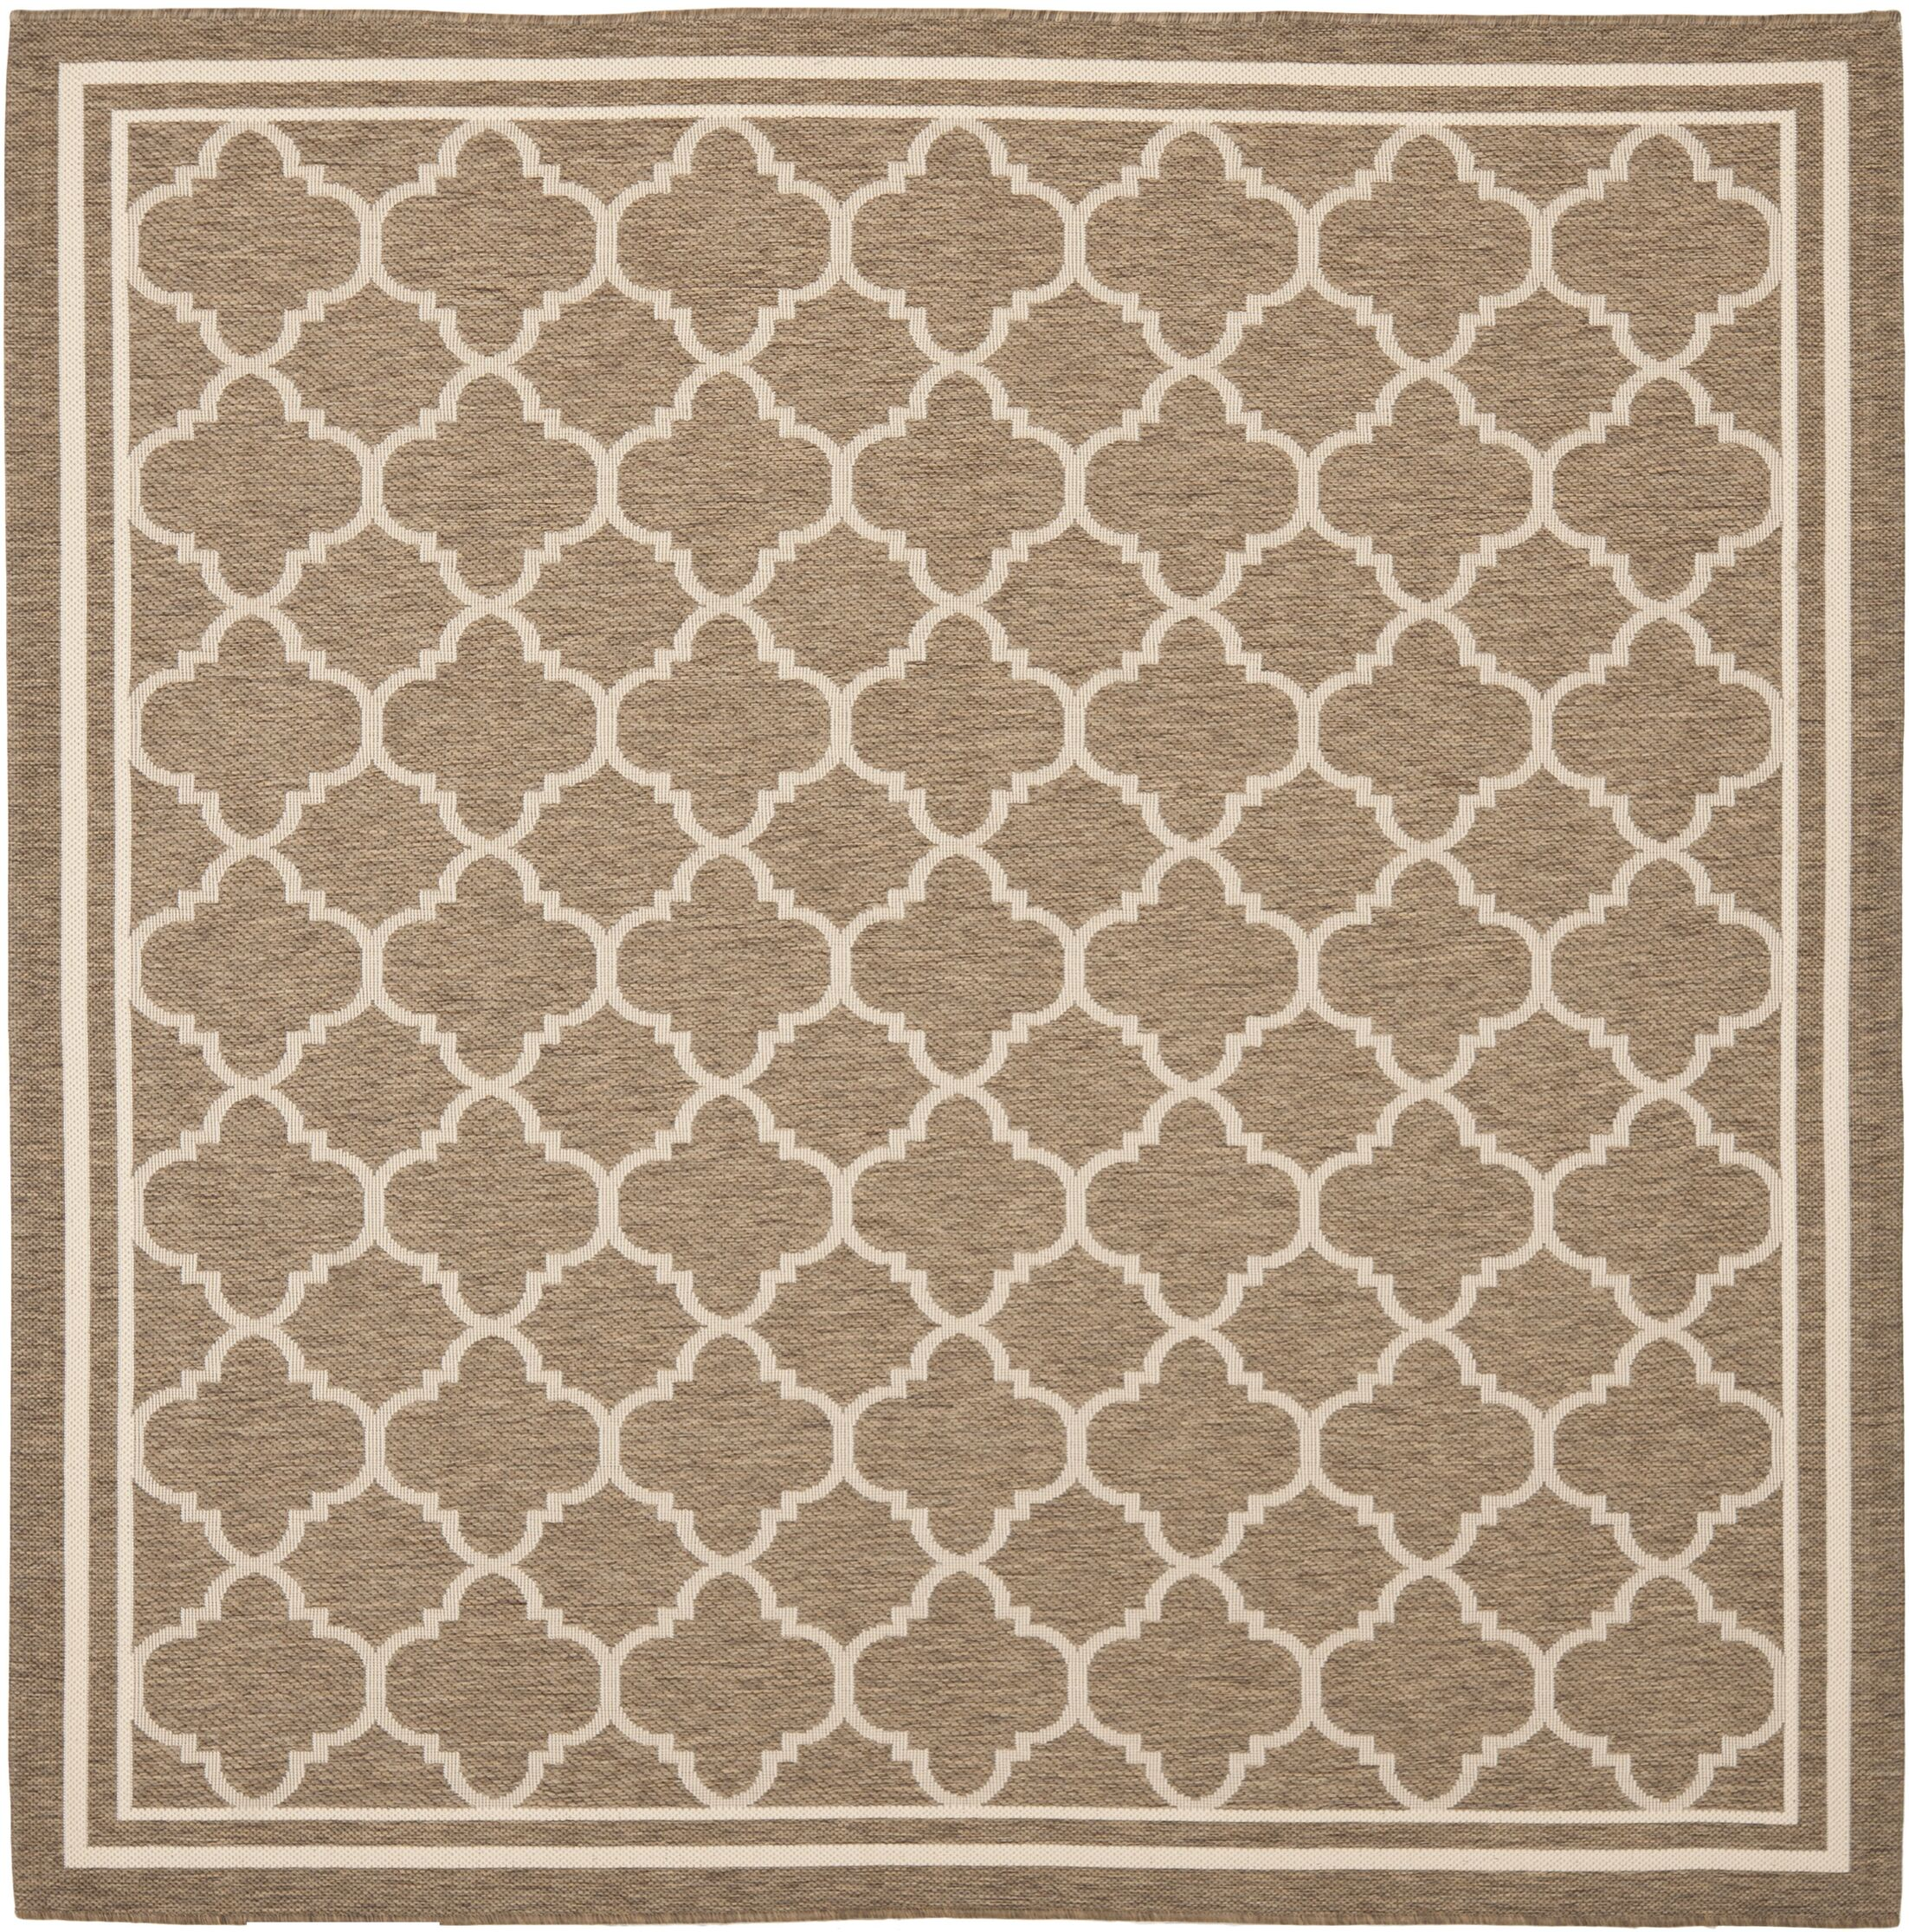 Short Brown/Bone Outdoor Area Rug Rug Size: Square 6'7